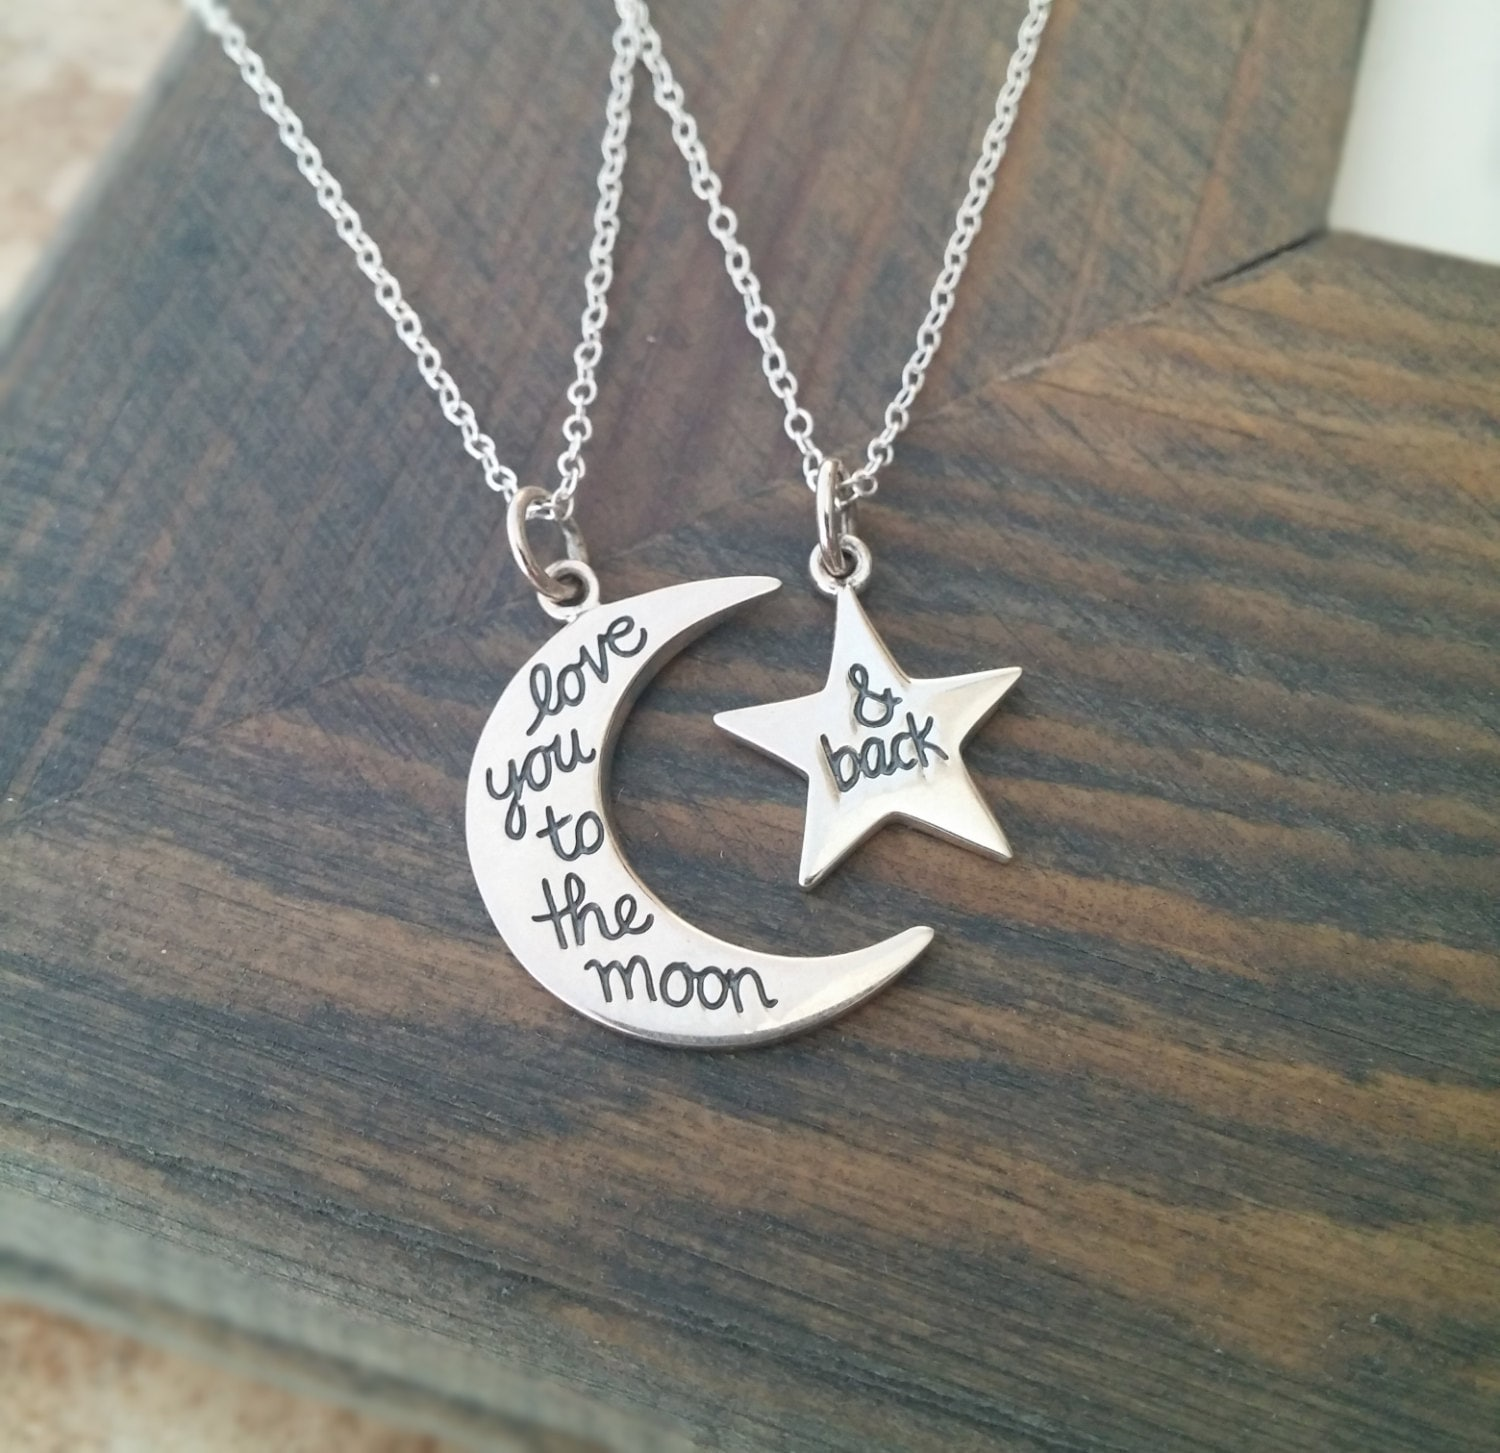 Love You To The Moon And Back Necklace Set // Gift For Her